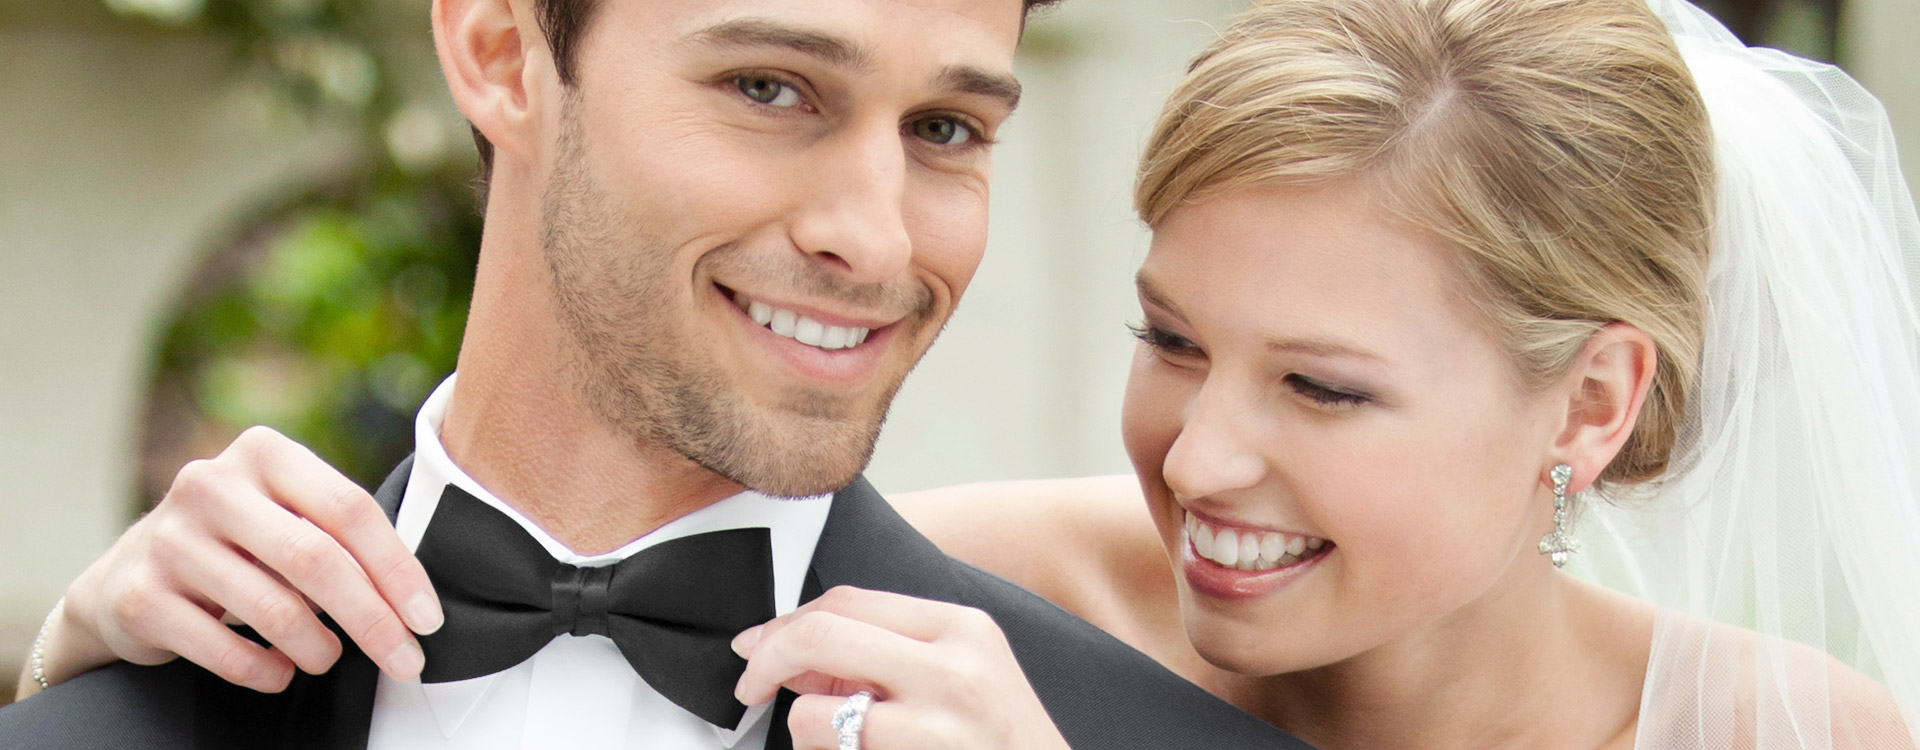 How to Take Measurements for Tuxedo and Suit Rentals